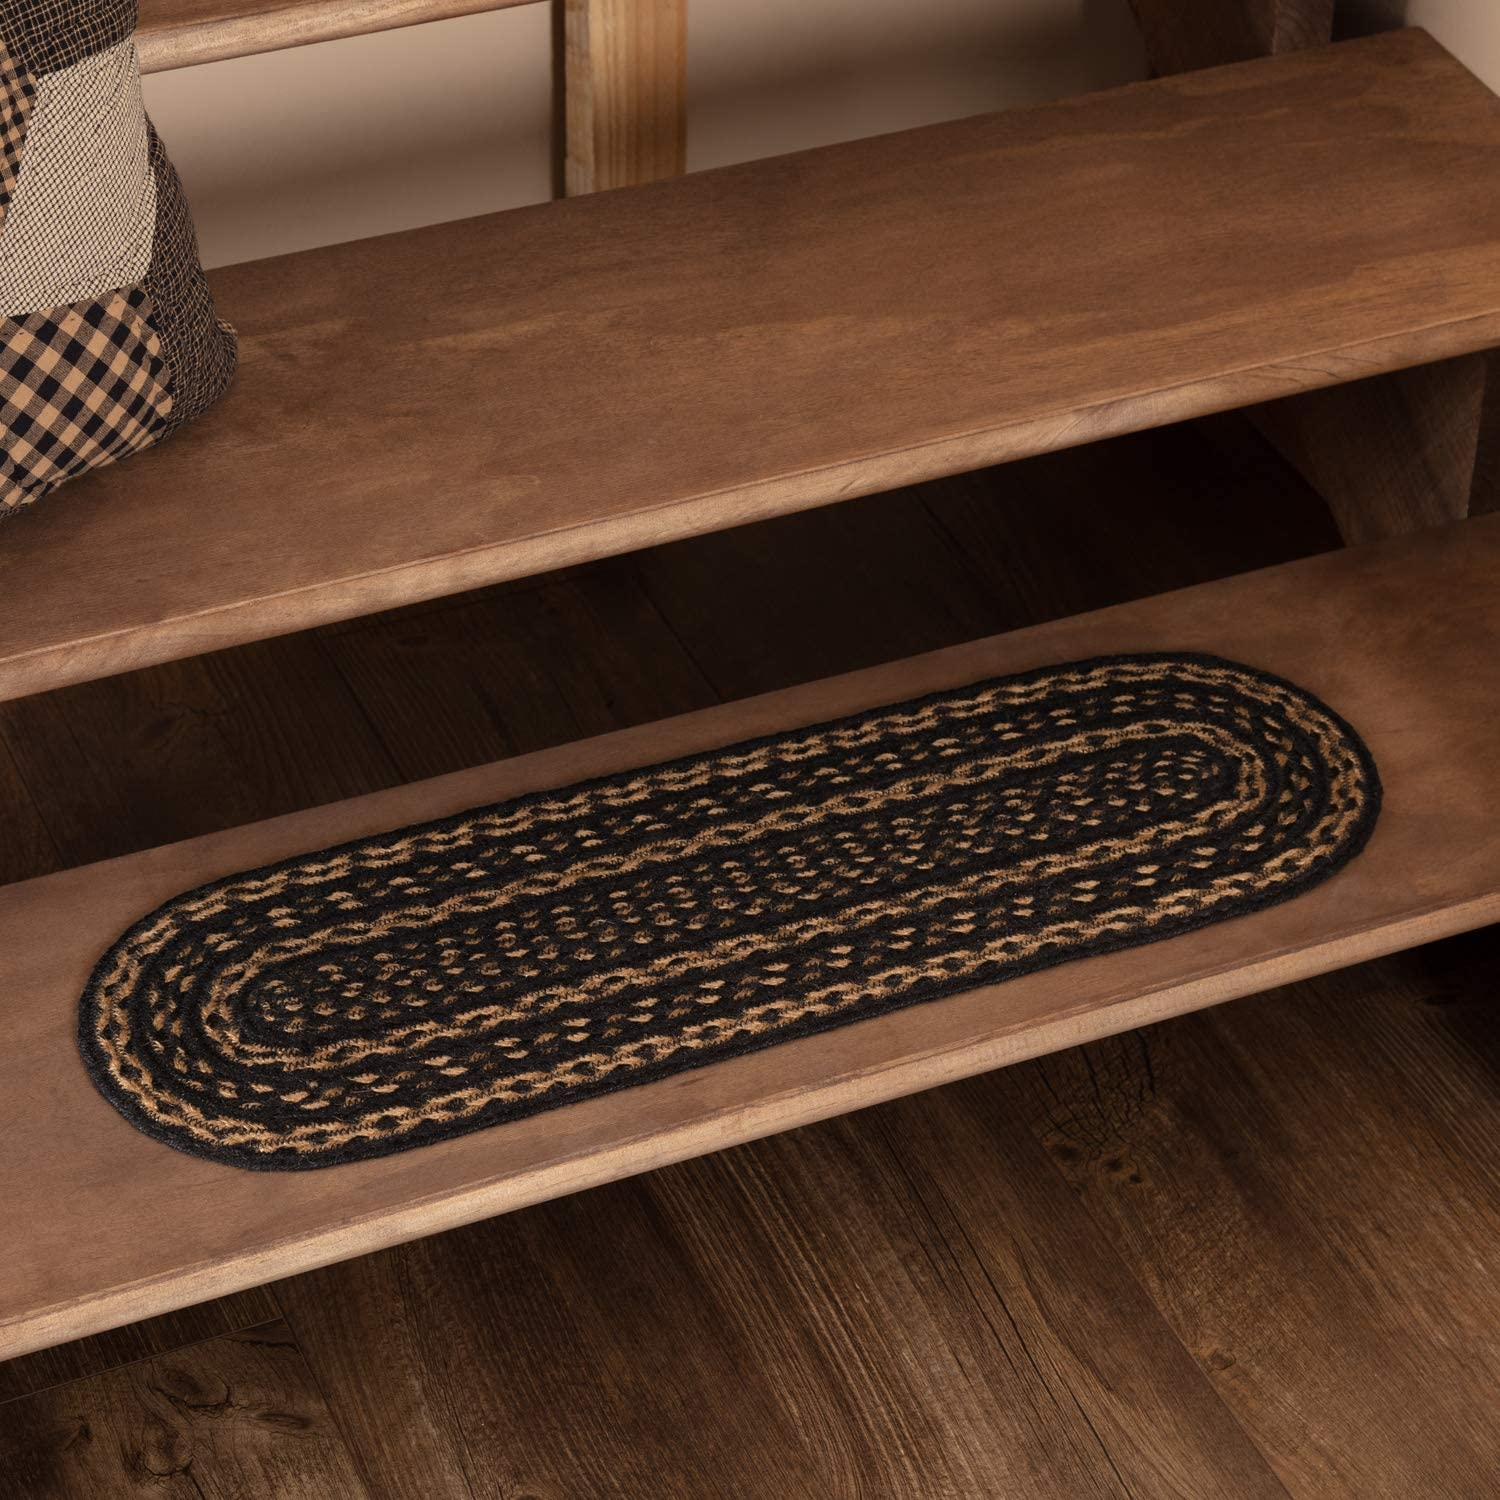 Amazon Com Vhc Brands 28143 Classic Country Primitive Flooring | Braided Stair Treads With Rubber Backing | Non Slip | Skid Resistant | Anti Slip | Heritage Farms | Slip Resistant